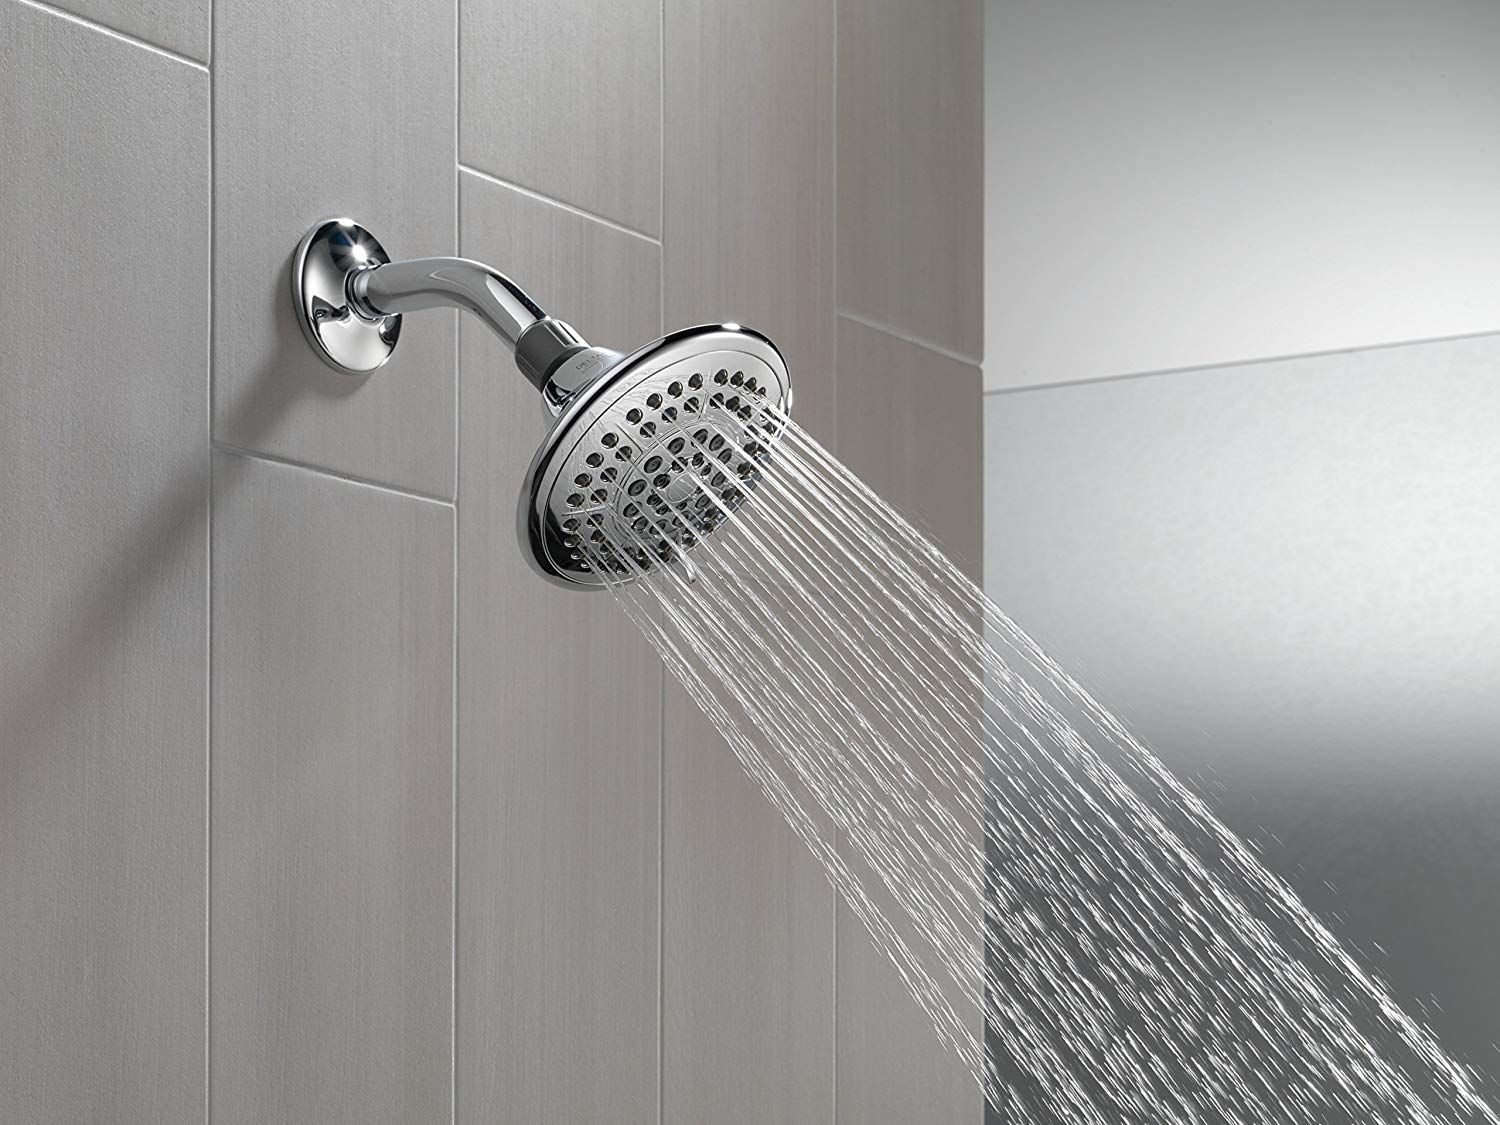 Good Shower Faucet Handles Bathroom Chooseshowerfaucethandles